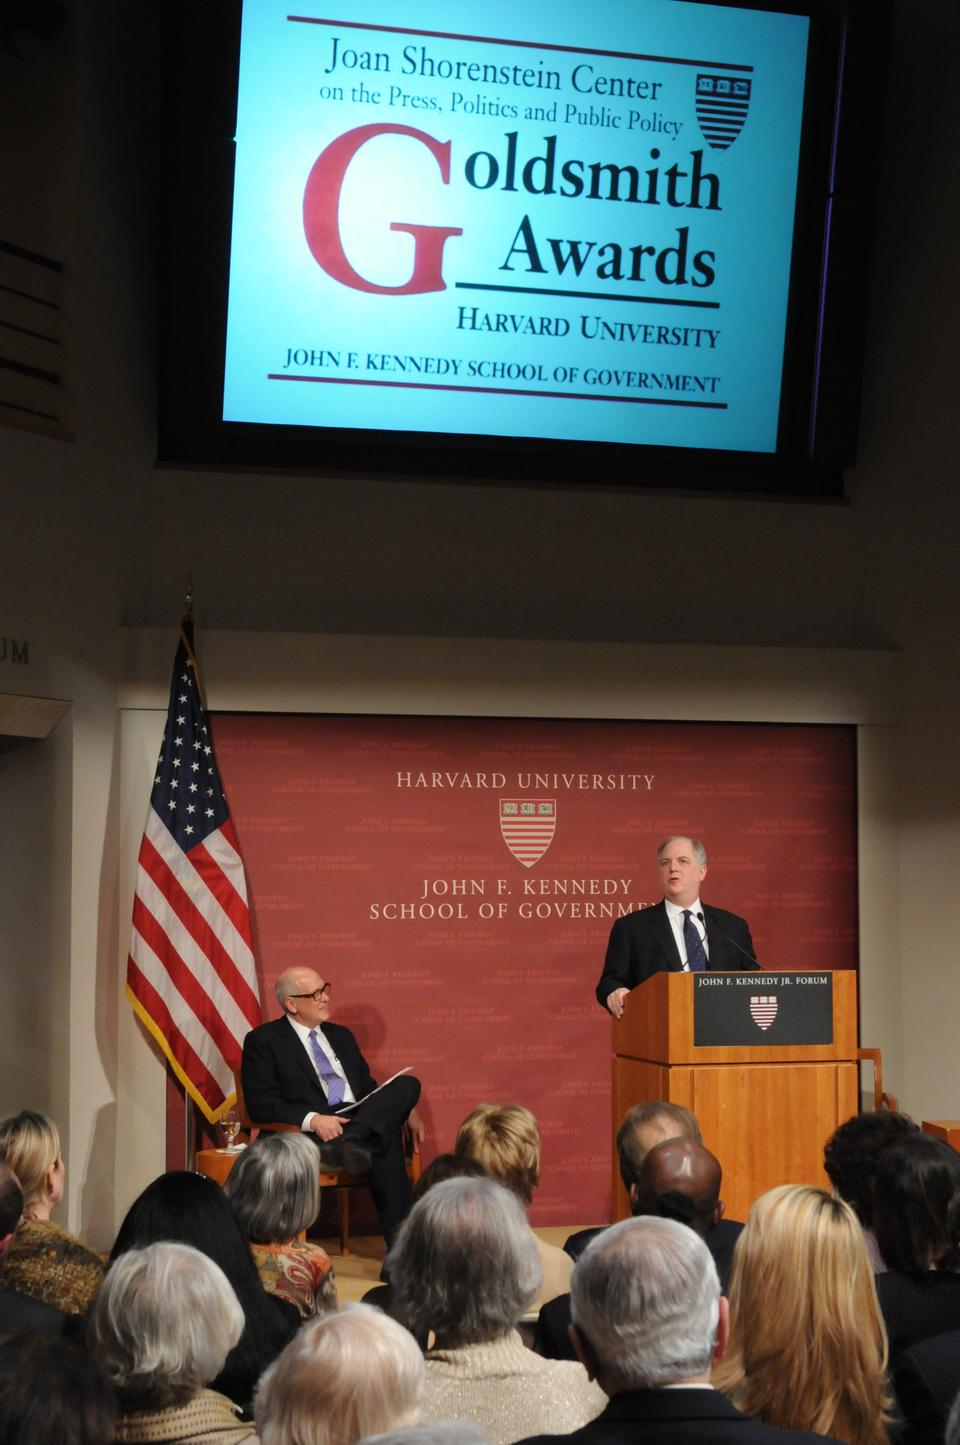 Frank Rich '71, longtime columnist for the New York Times who recently announced he is moving to New York Magazine, answers audience questions after receiving the Goldsmith Career Award for Excellence in Journalism at the Kennedy School.